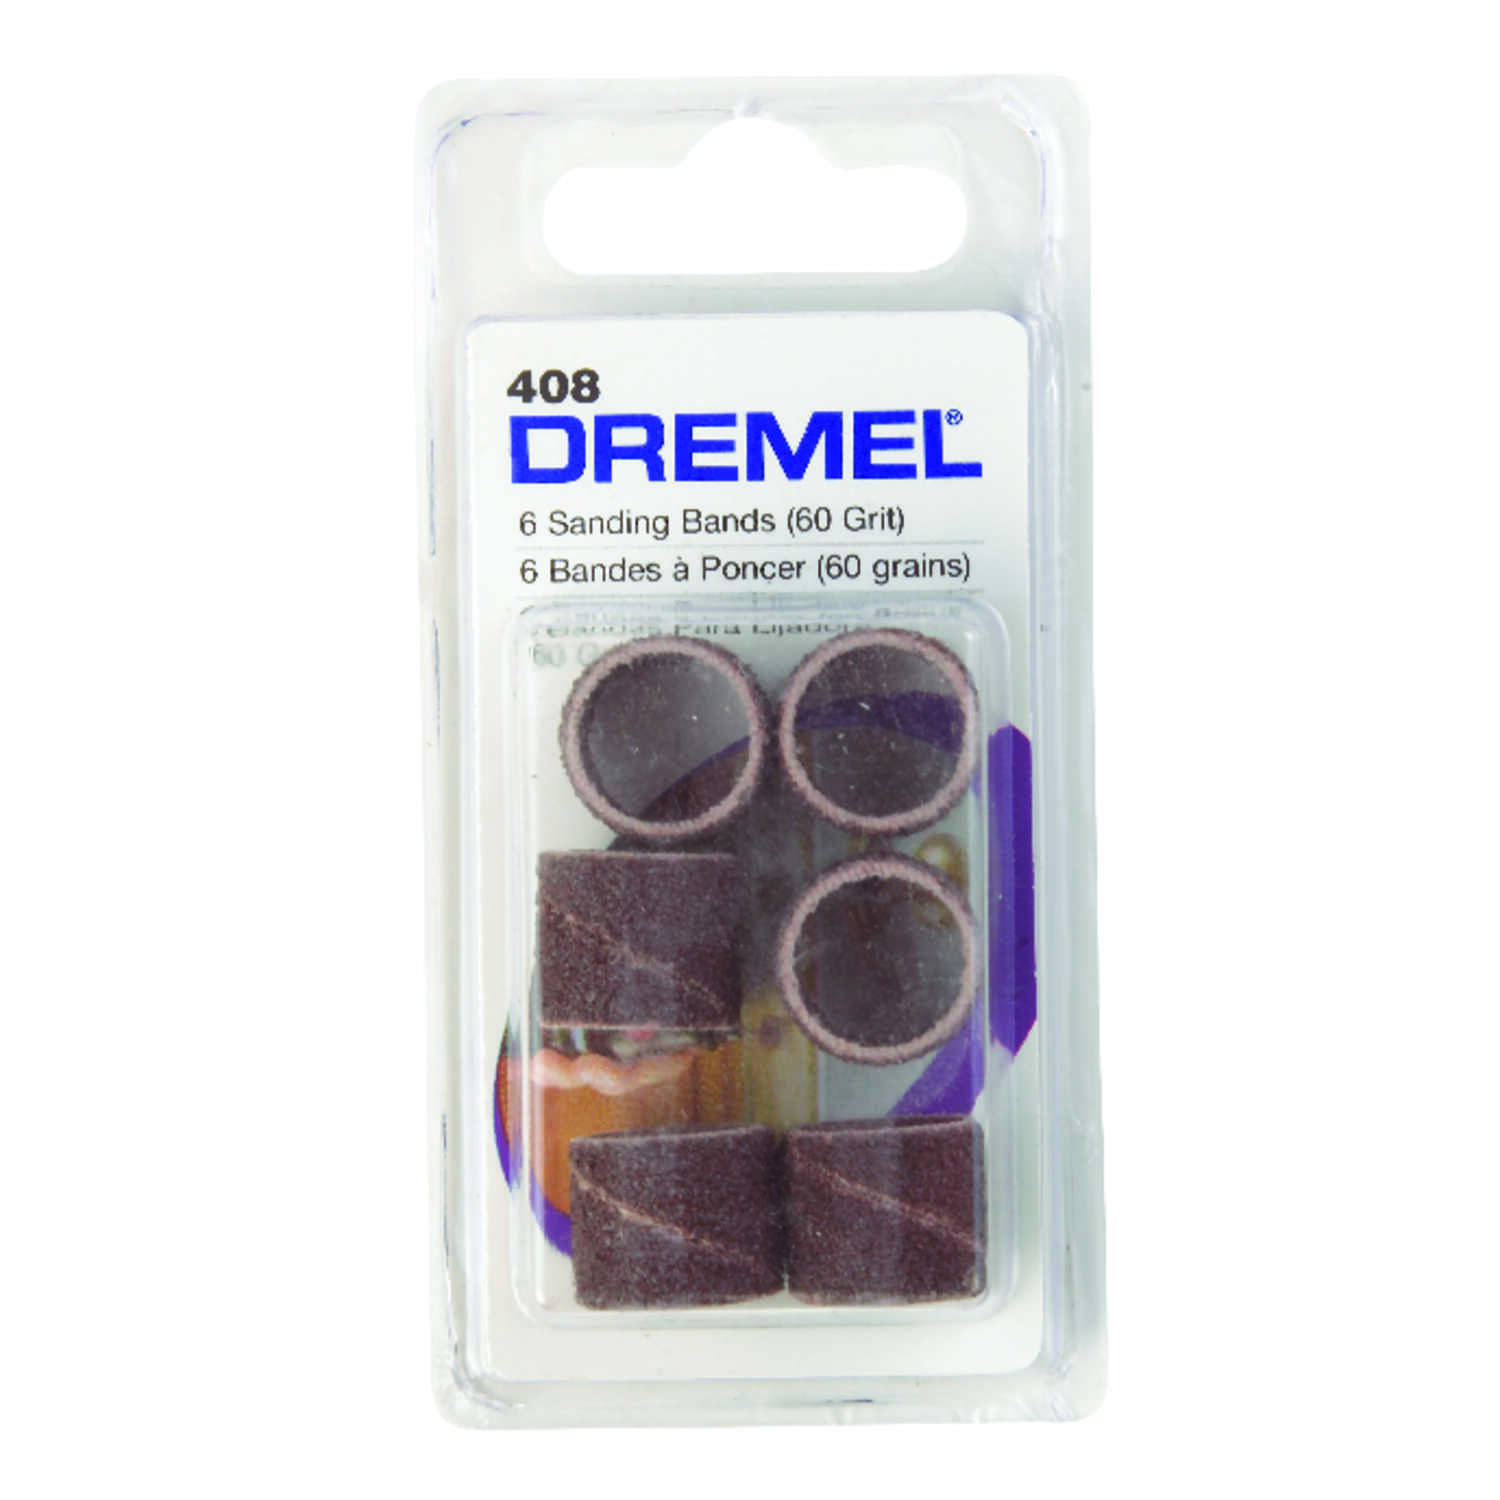 Dremel  0.5 in. Dia. x 1/2 in. L Emery  Drum Sander Bands  60 Grit Coarse  6 pc.